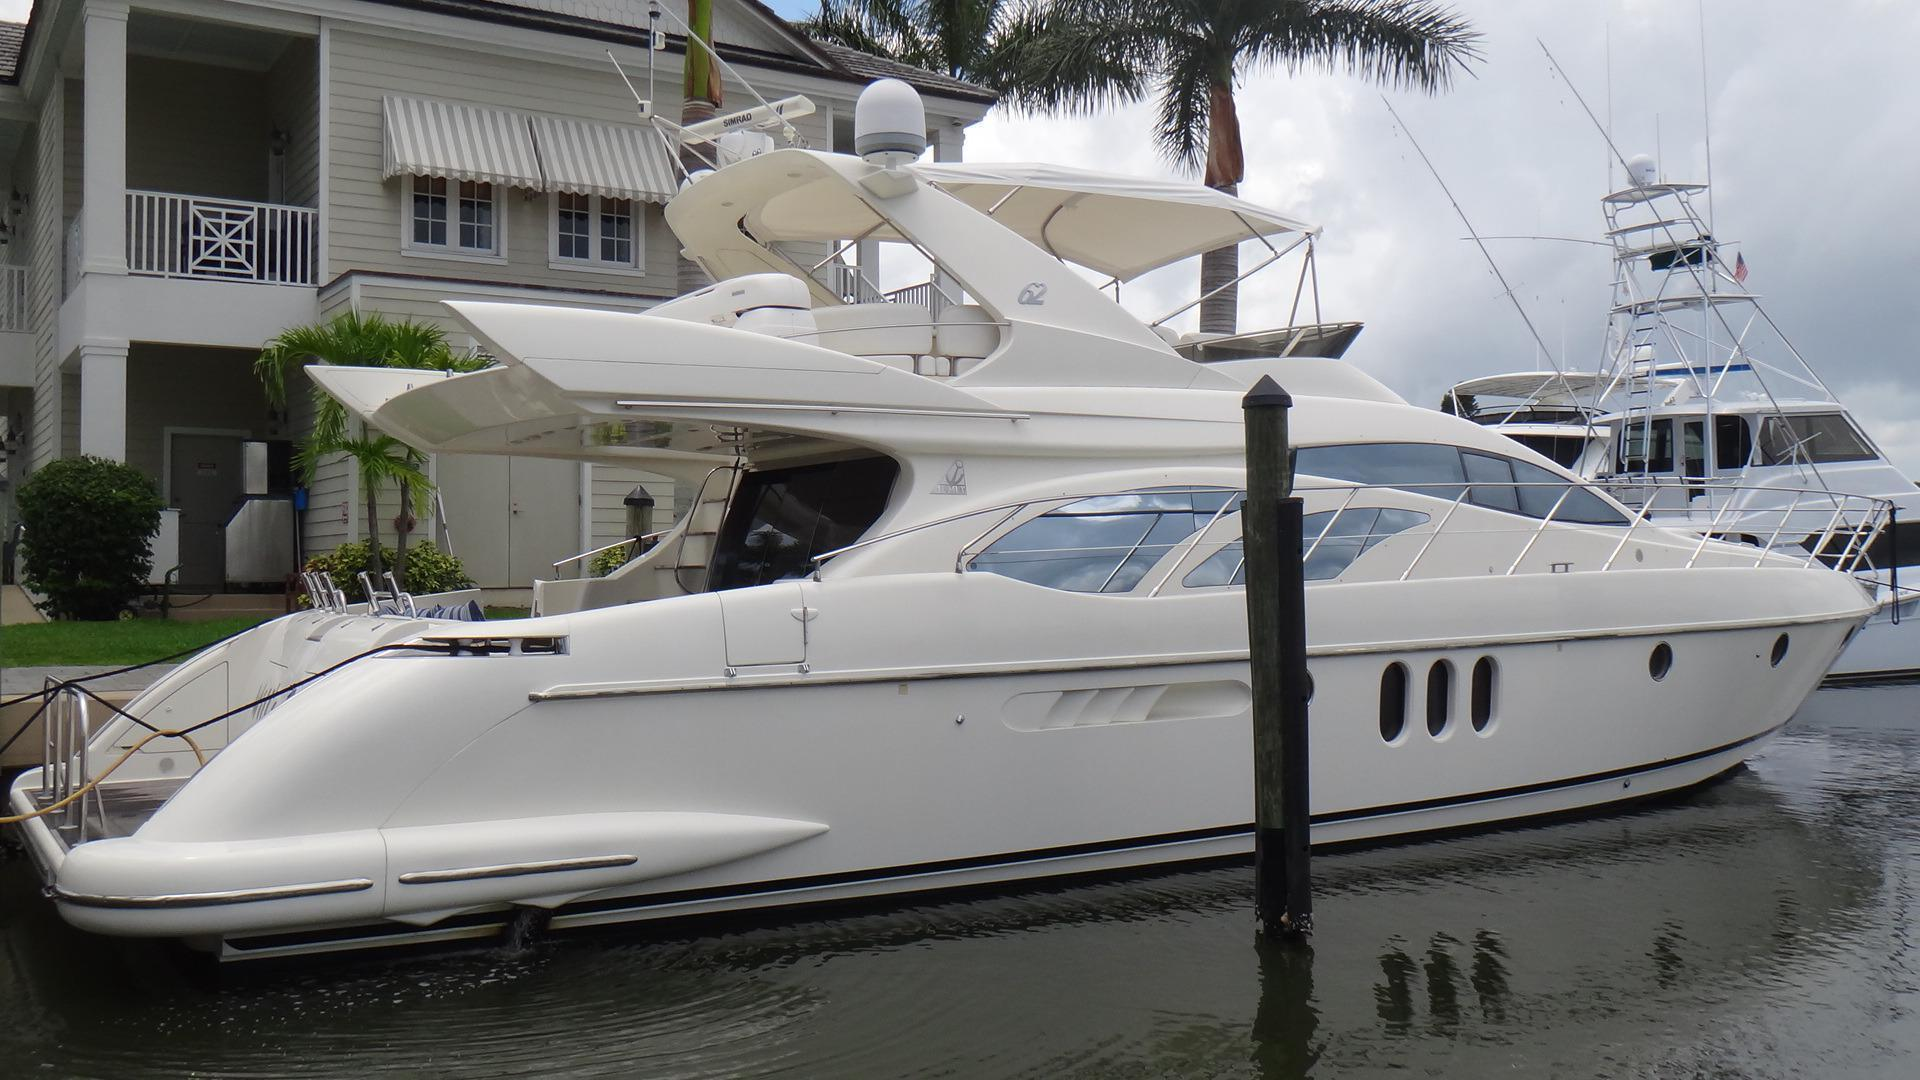 Azimut ybridge Evolution, Vero Beach